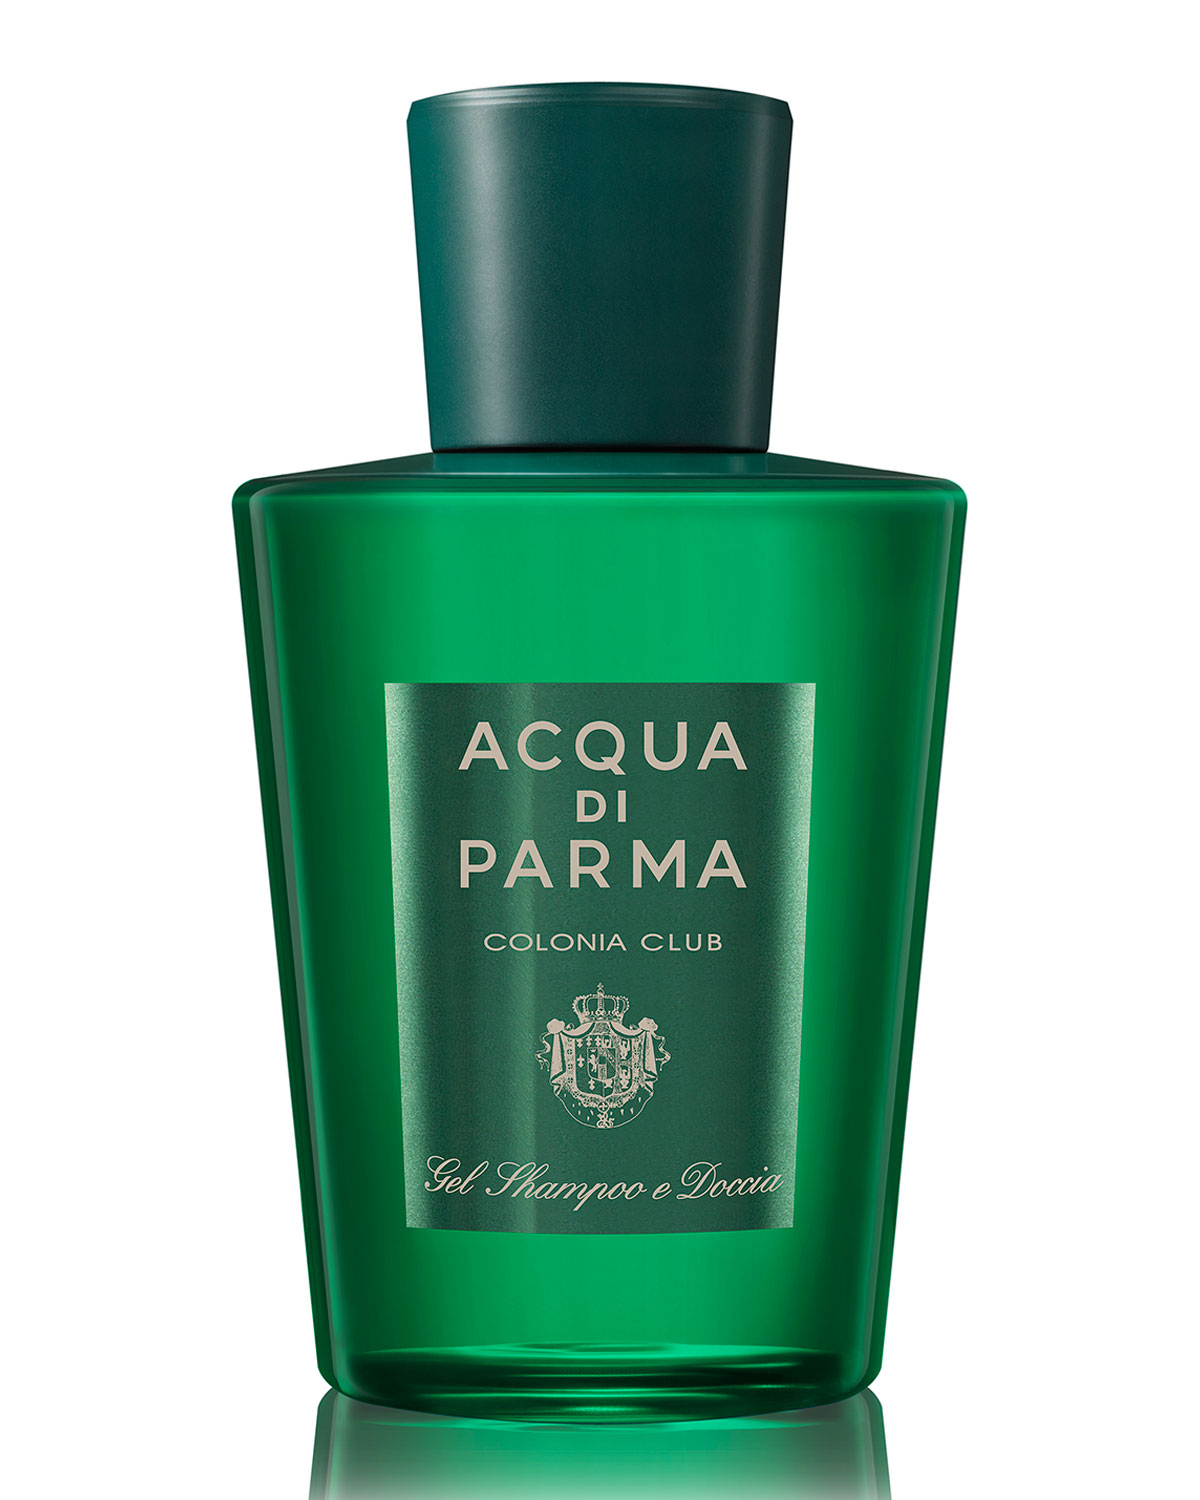 Acqua di Parma 6.7 oz. Colonia Club Hair & Shower Gel